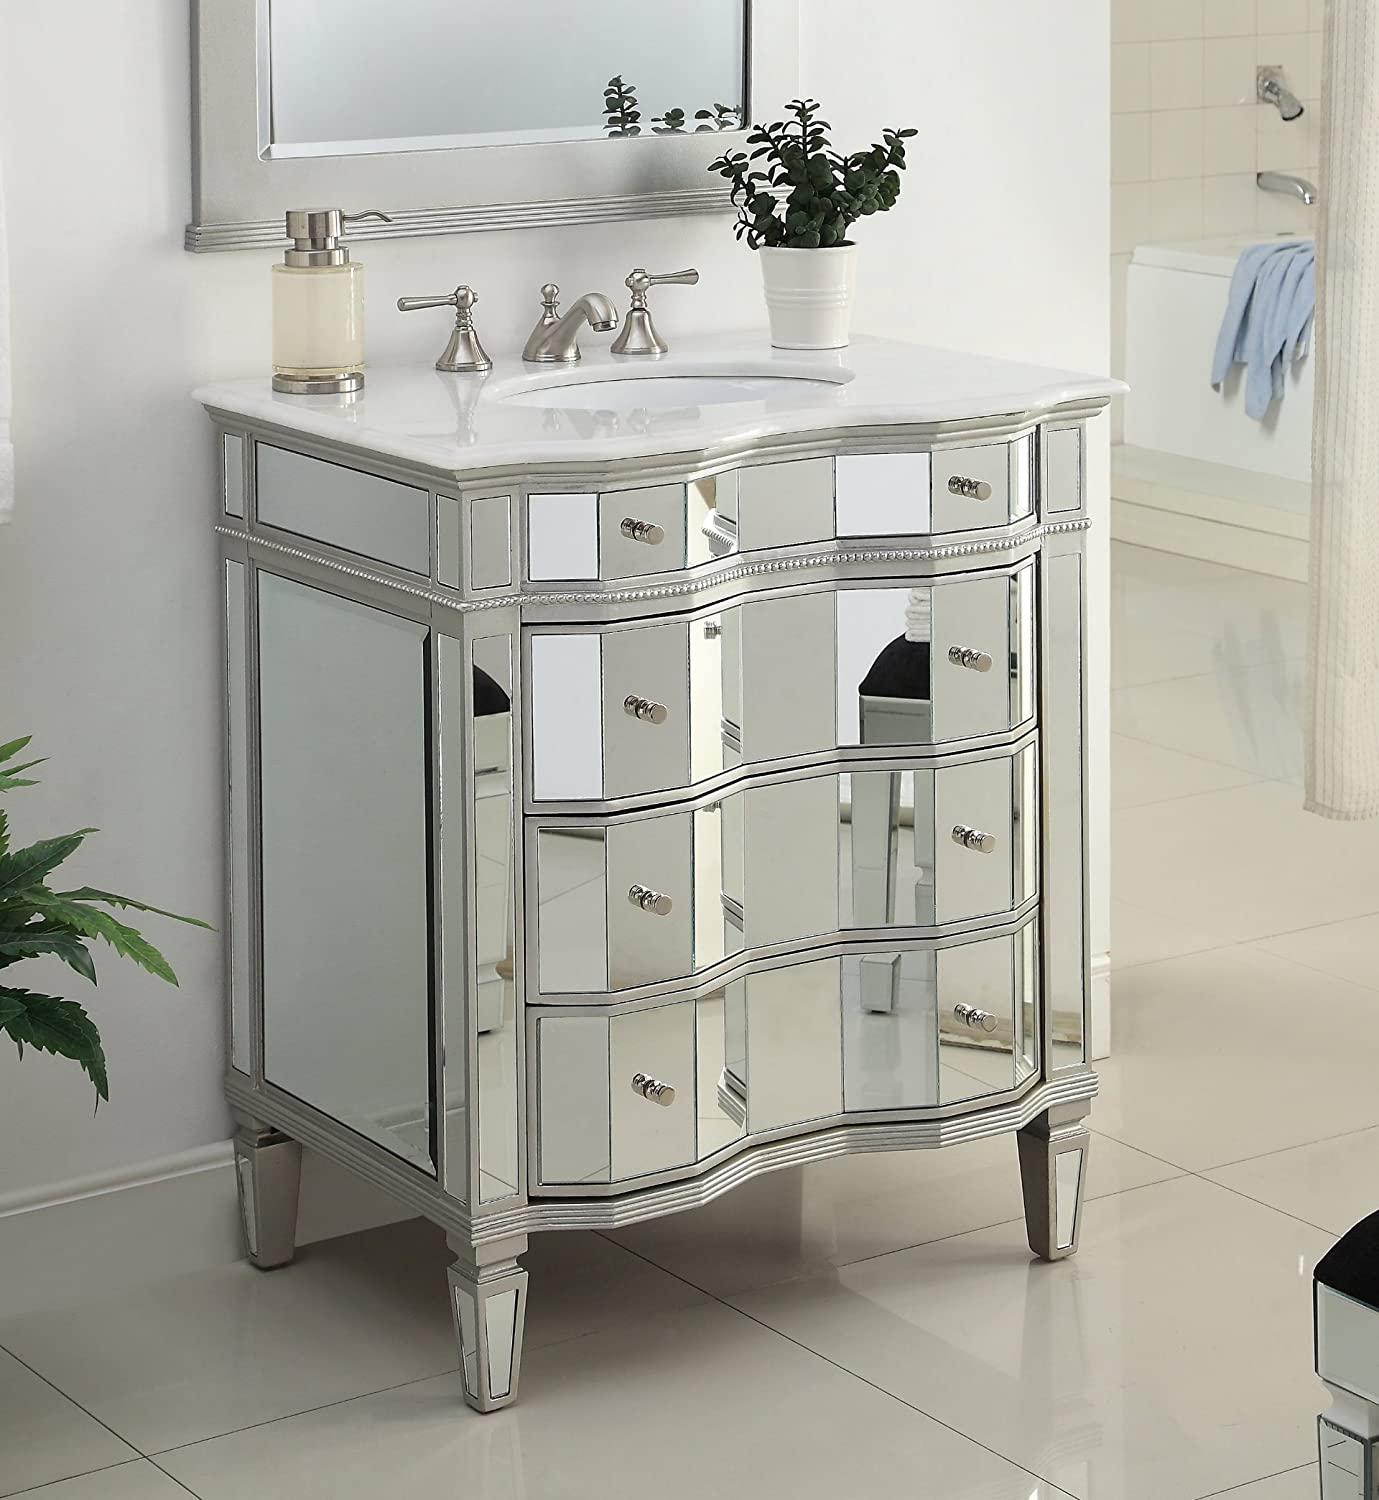 30  Mirrored w silver trim Bathroom Sink Vanity Cabinet Ashley Model BWV 025 Amazon com